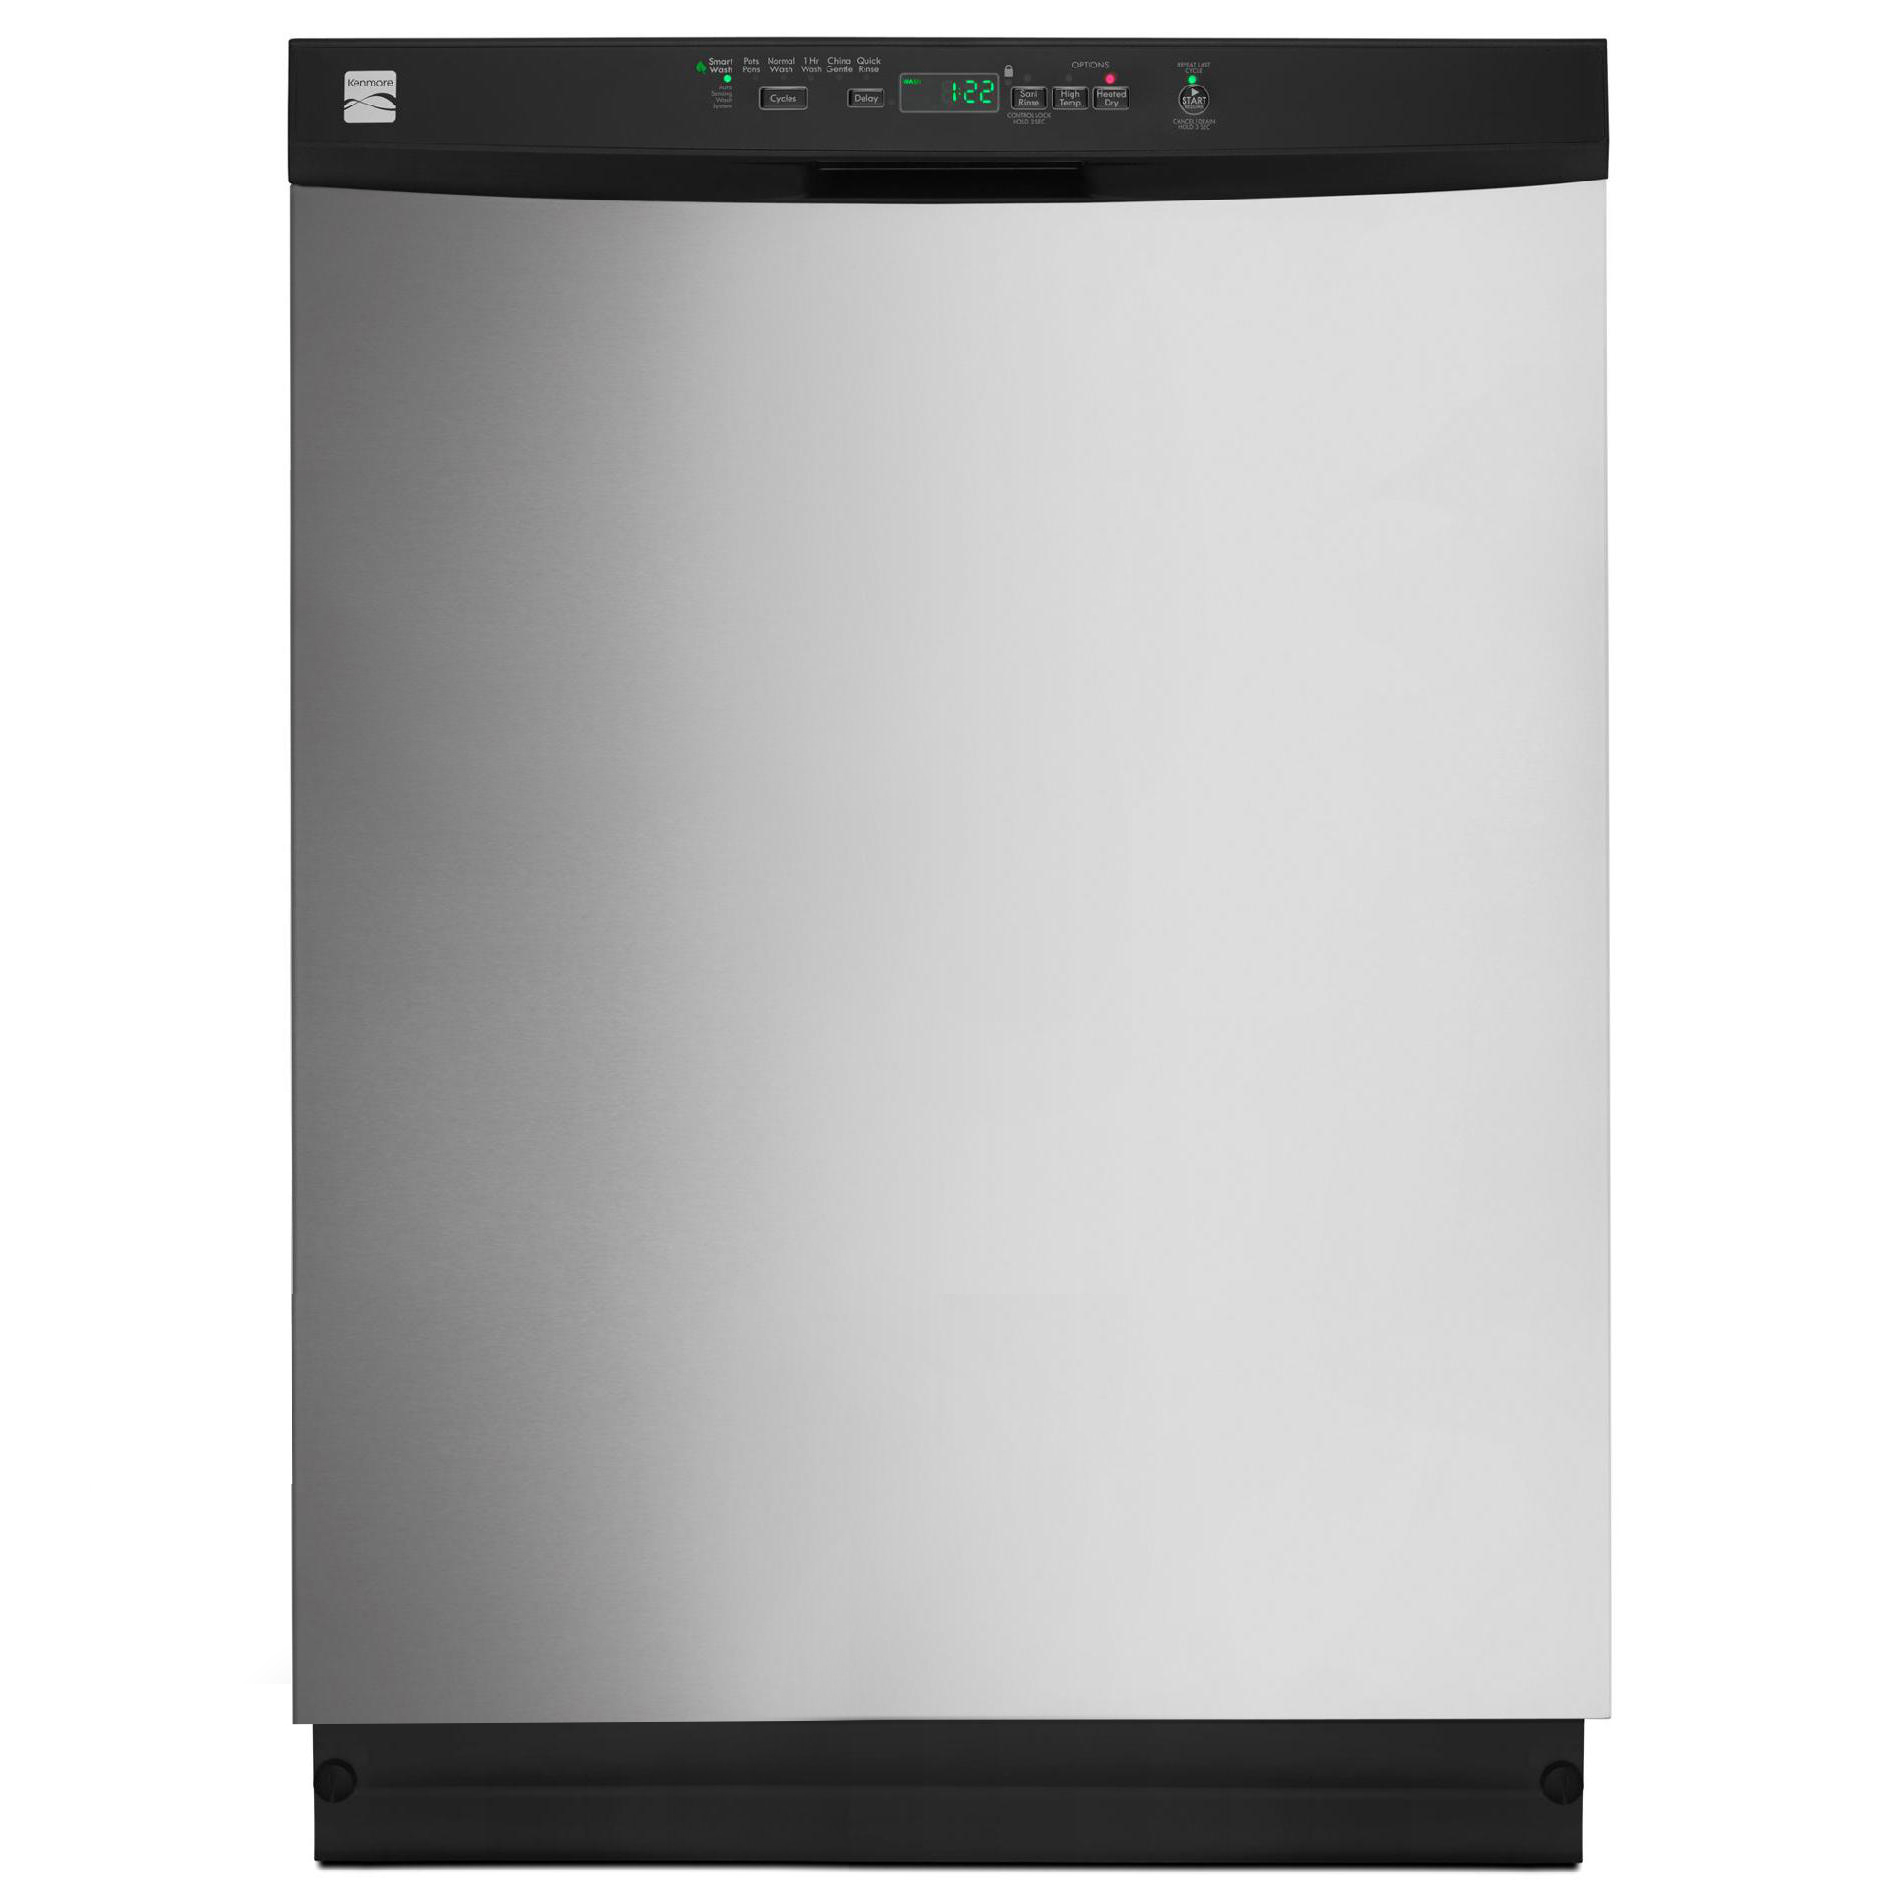 13223-24-Built-In-Dishwasher-w-PowerWave%E2%84%A2-Spray-Arm-Stainless-Steel